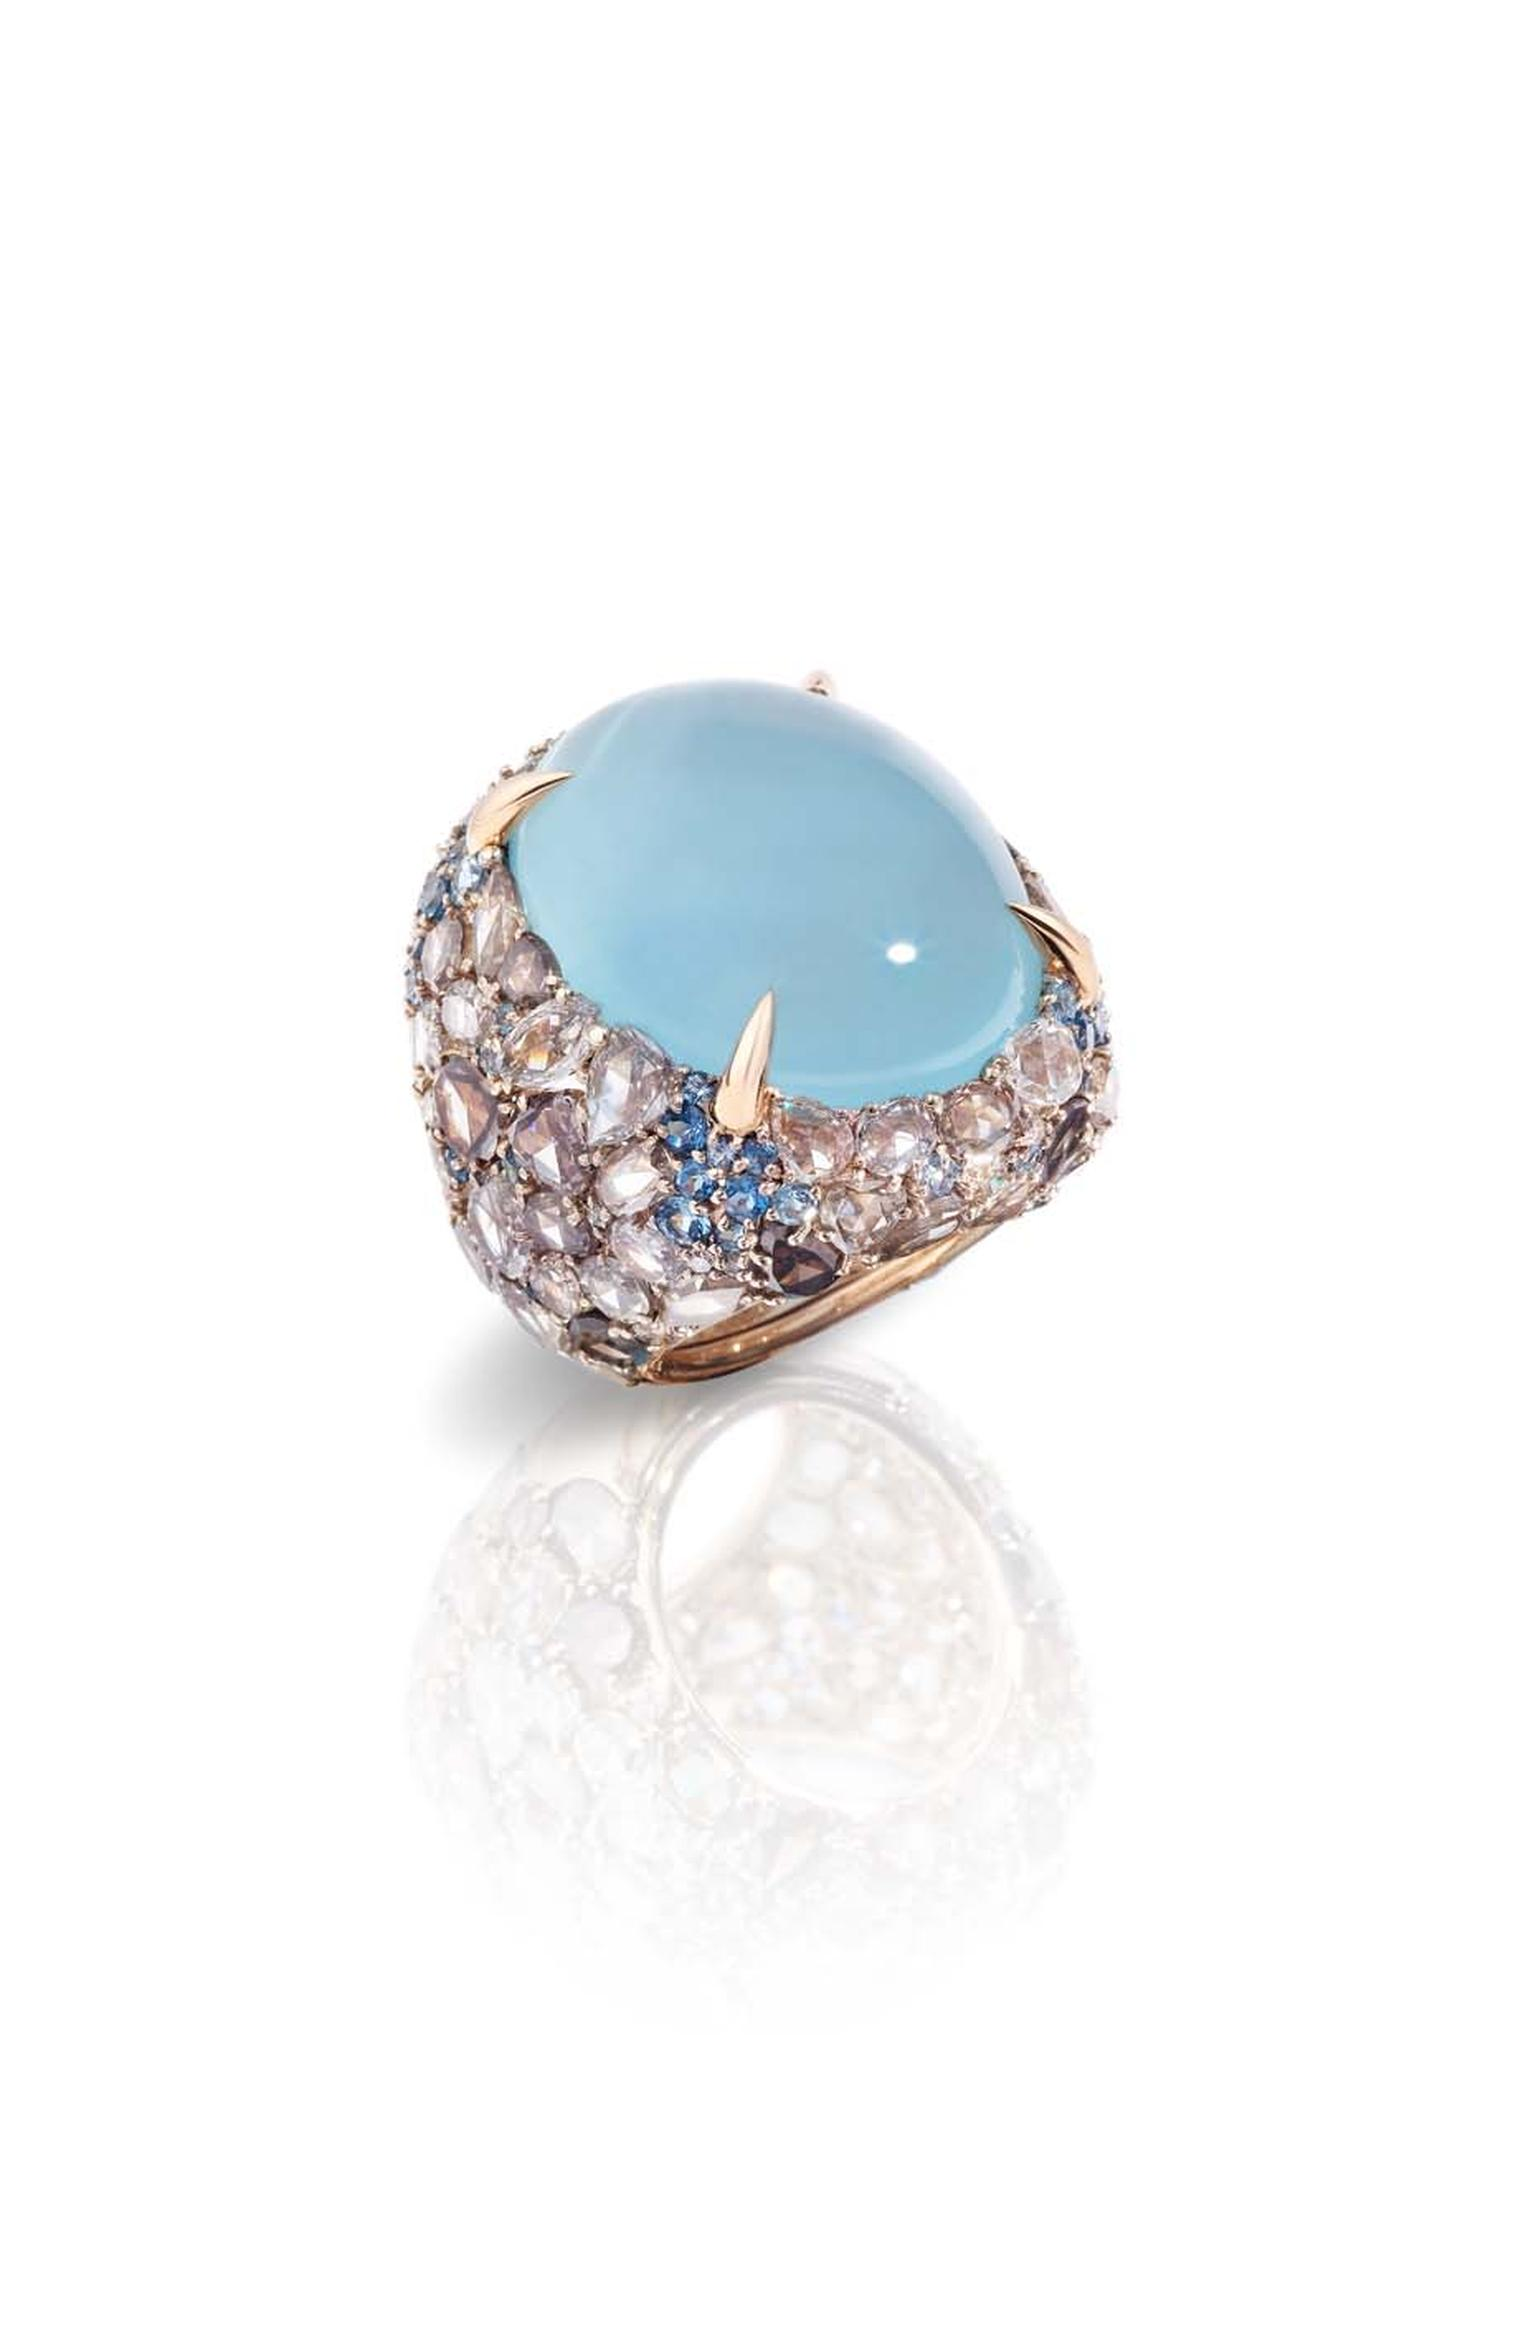 Pomellato Pom Pom collection ring featuring a light-blue cabochon surrounded by aquamarines and a pavé of brown diamonds.